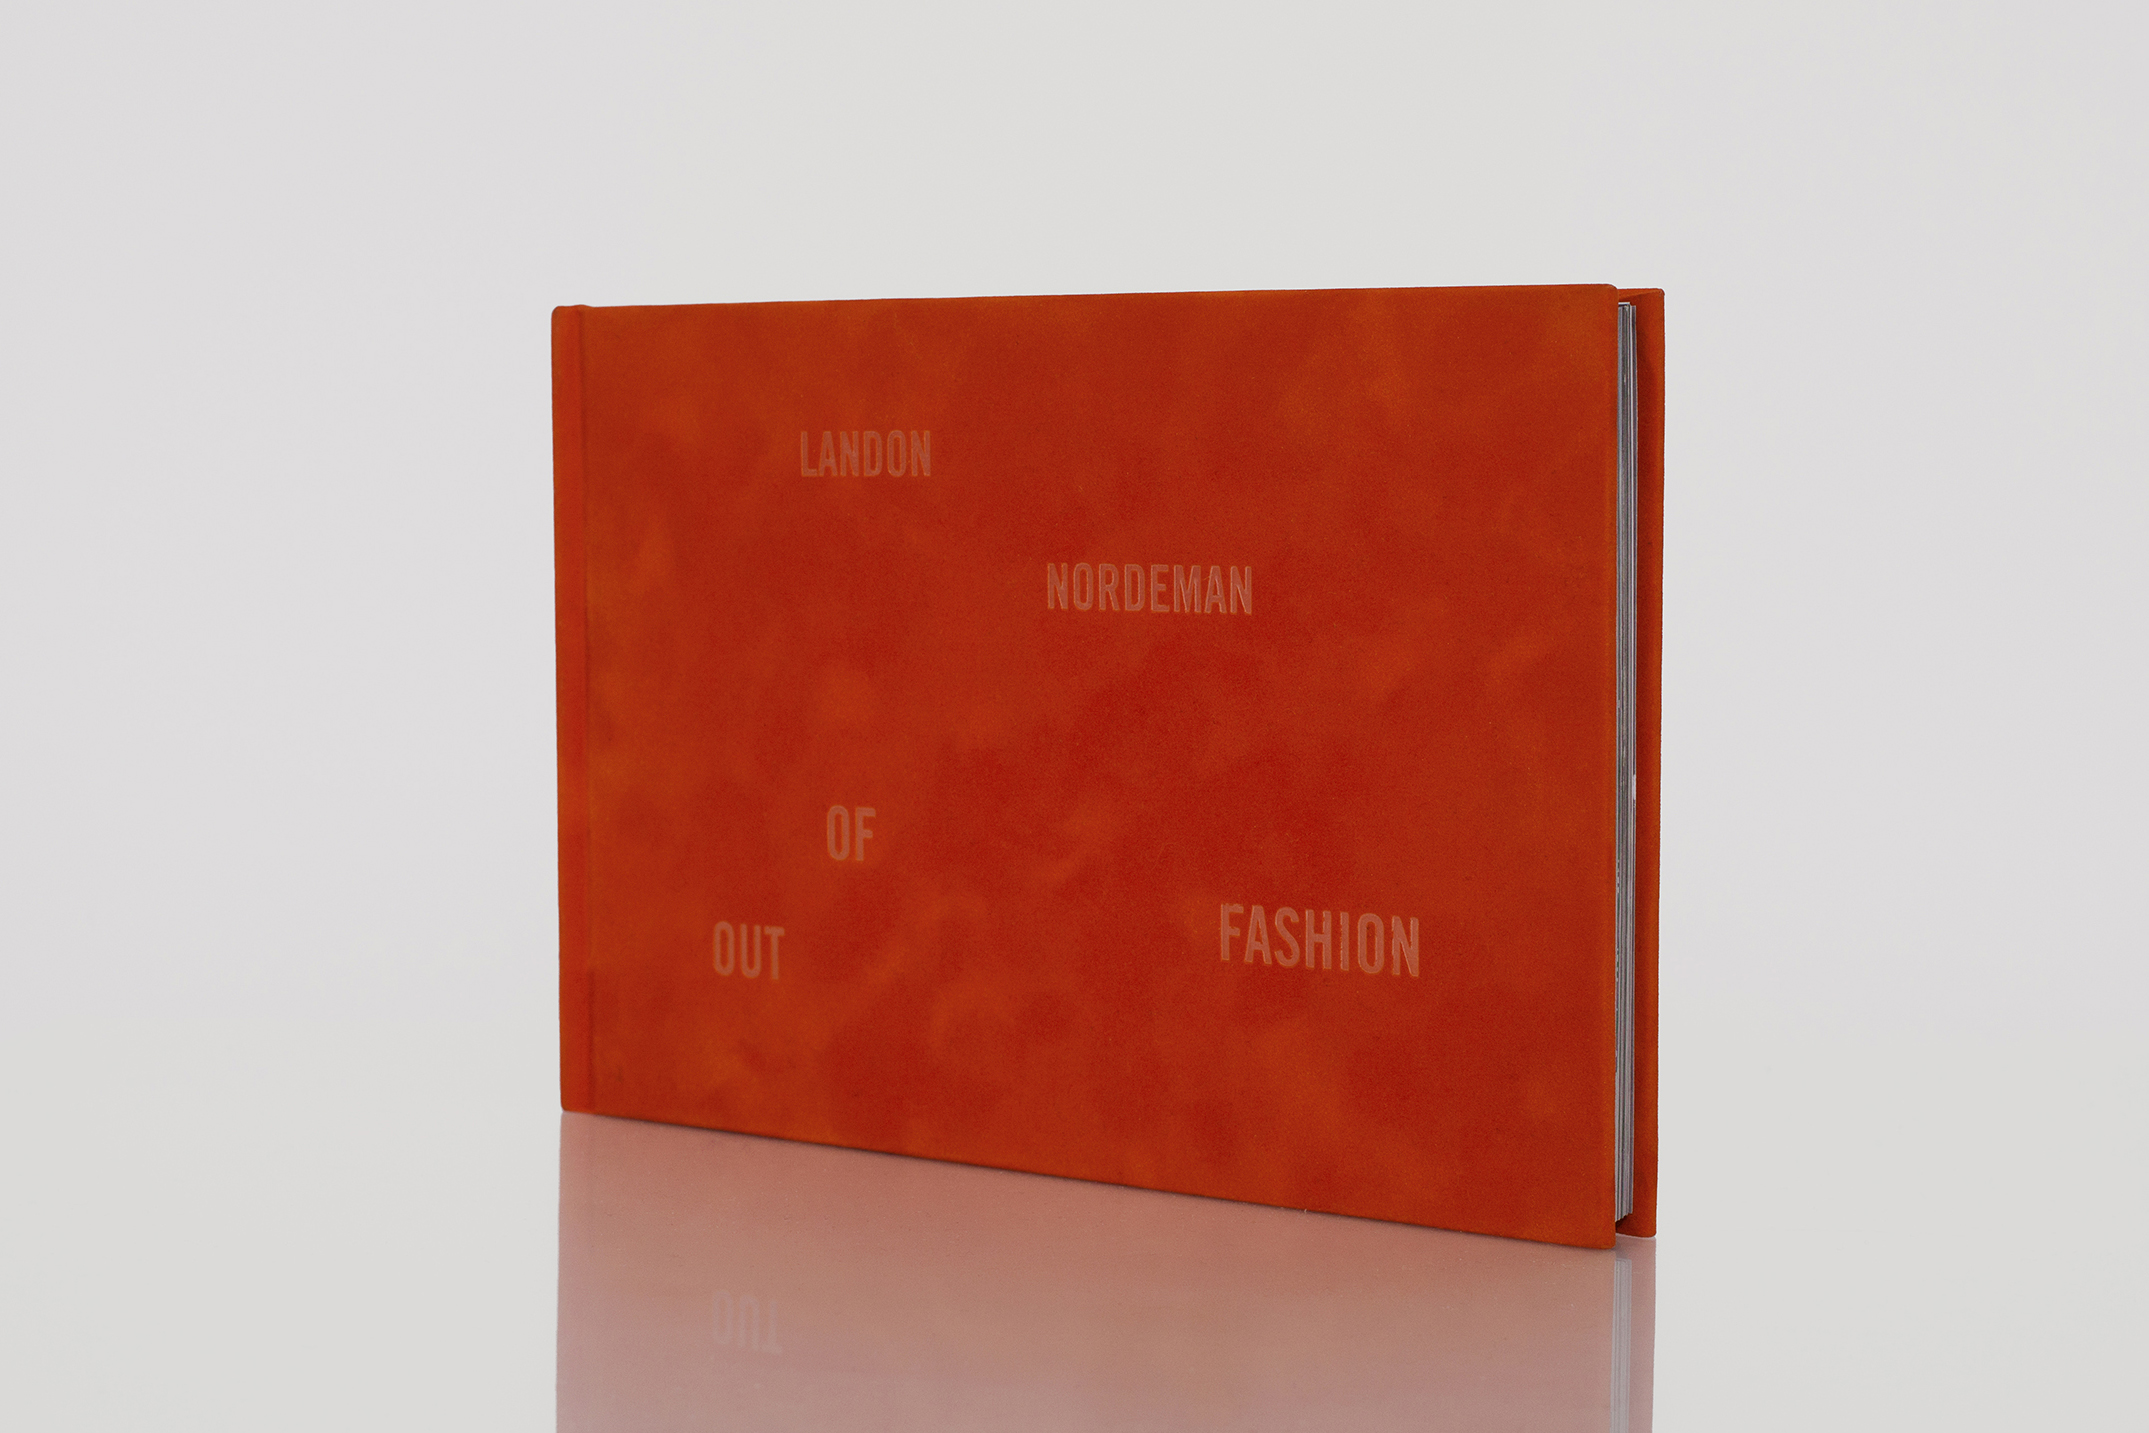 Out Of Fashion by Landon NordemanPublished by Damiani